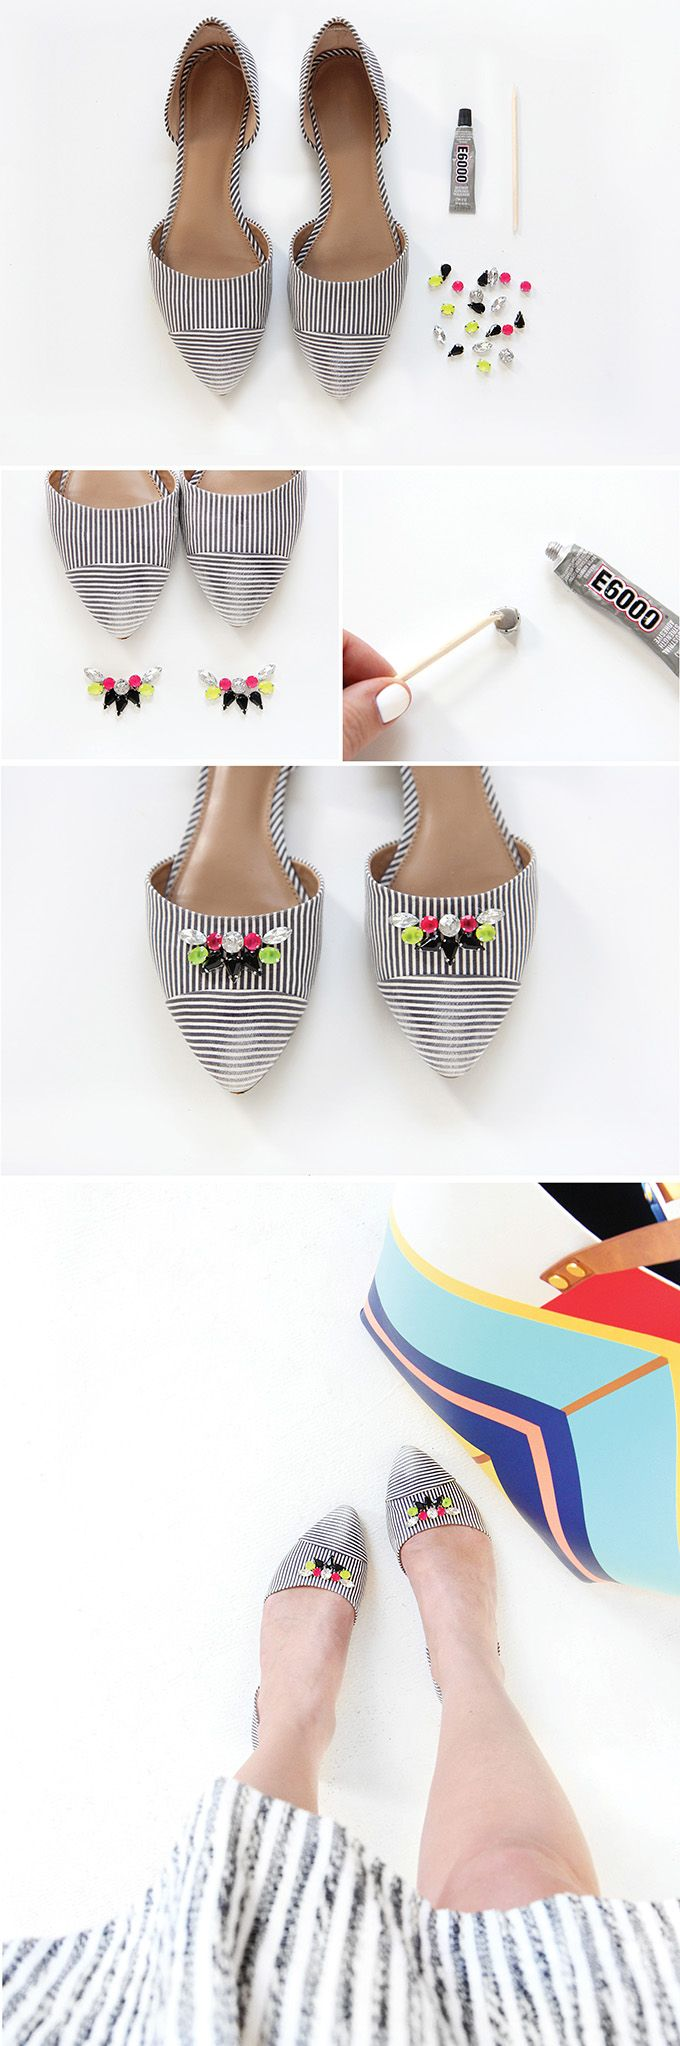 How to bling out your some cute flats for the summer. | ISpyDIY.com